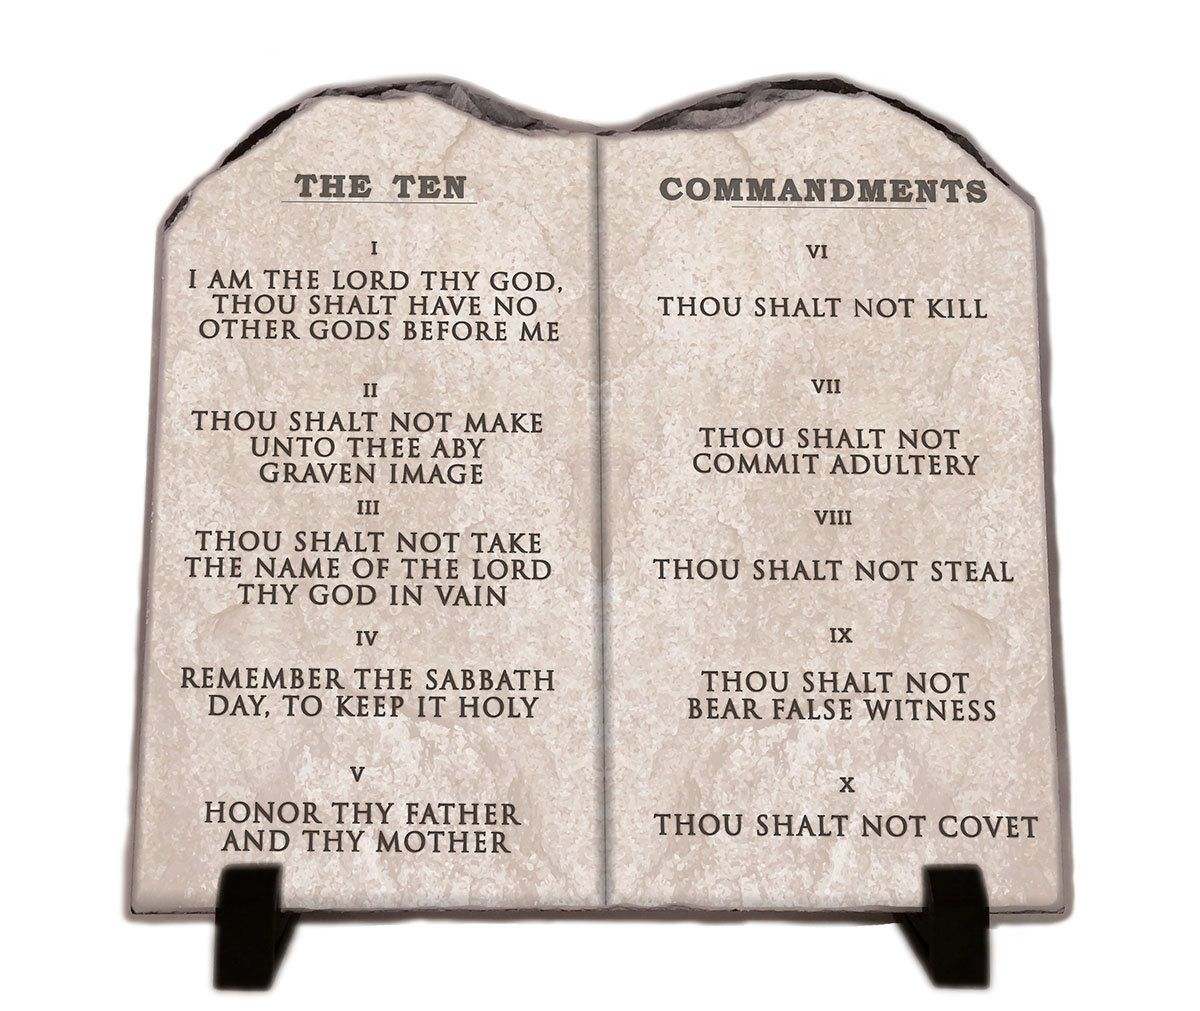 photo about Kjv Ten Commandments Printable named Pin upon InspiraGifts